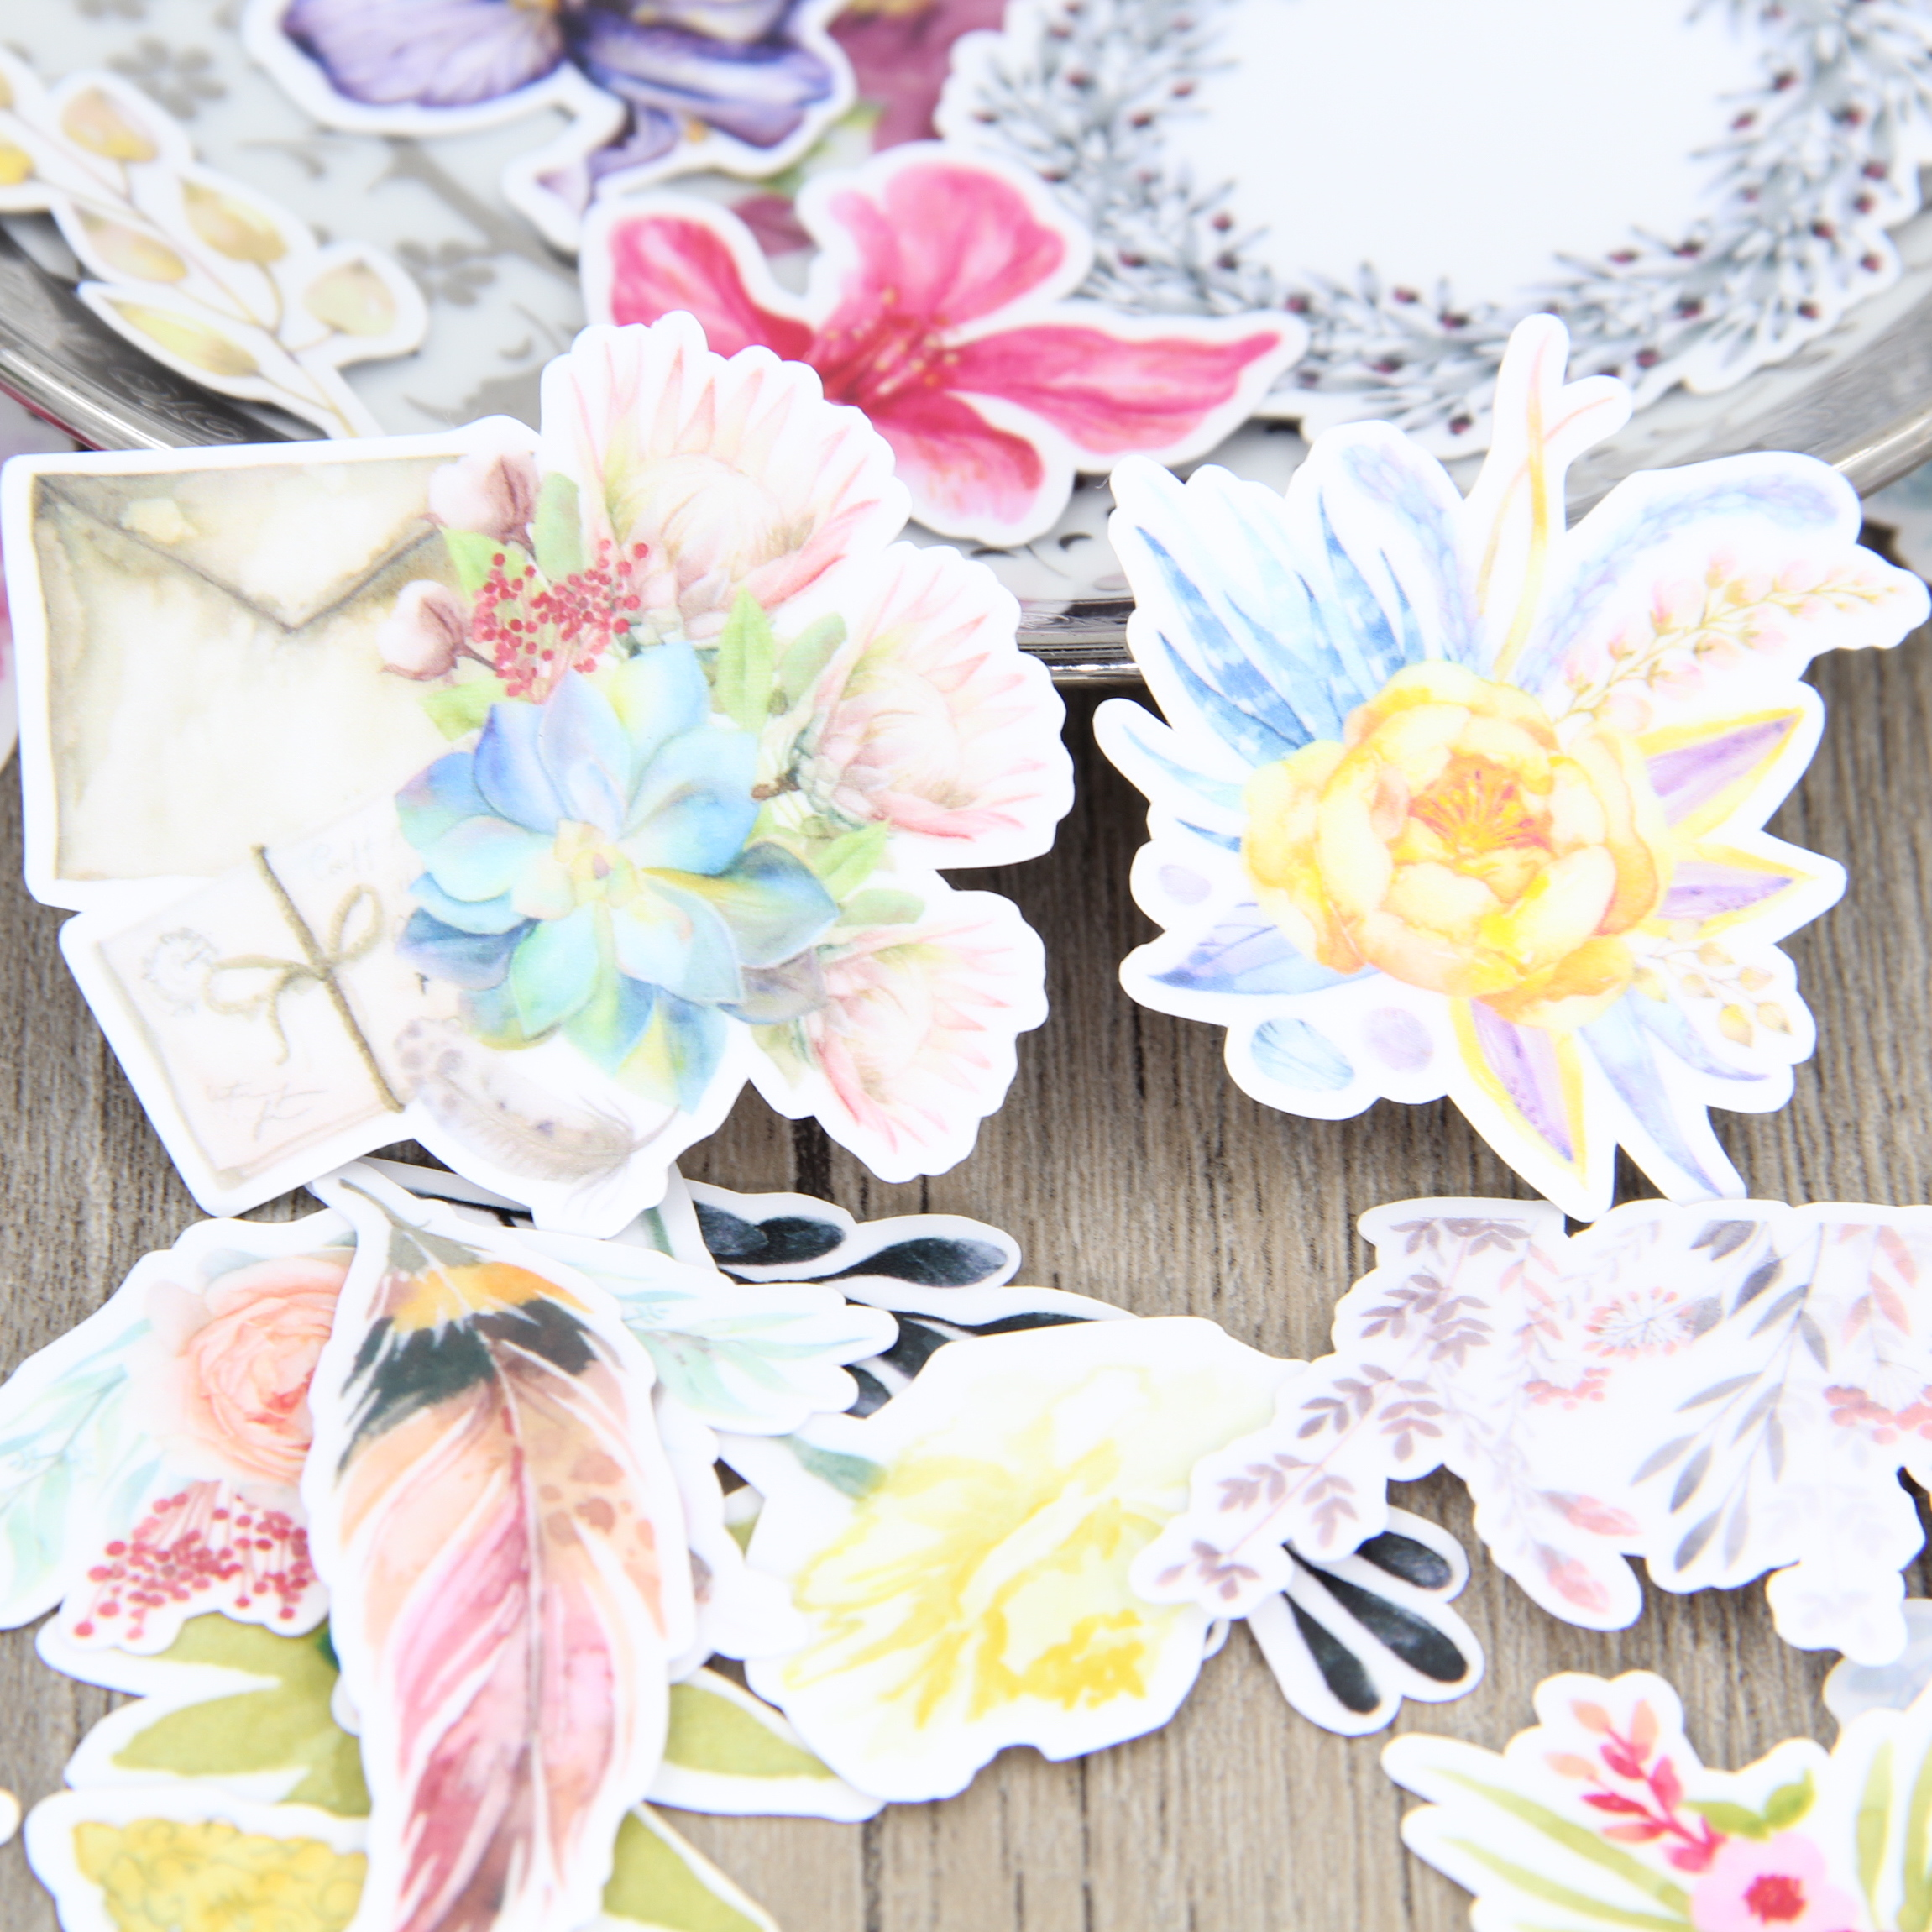 Scrapbook paper books - Aliexpress Com Buy 32pcs Watercolor Drawing Flower Scrapbooking Stickers Floral Decorative Diy Craft Diy Sticker Pack Book Deco Diary Deco From Reliable